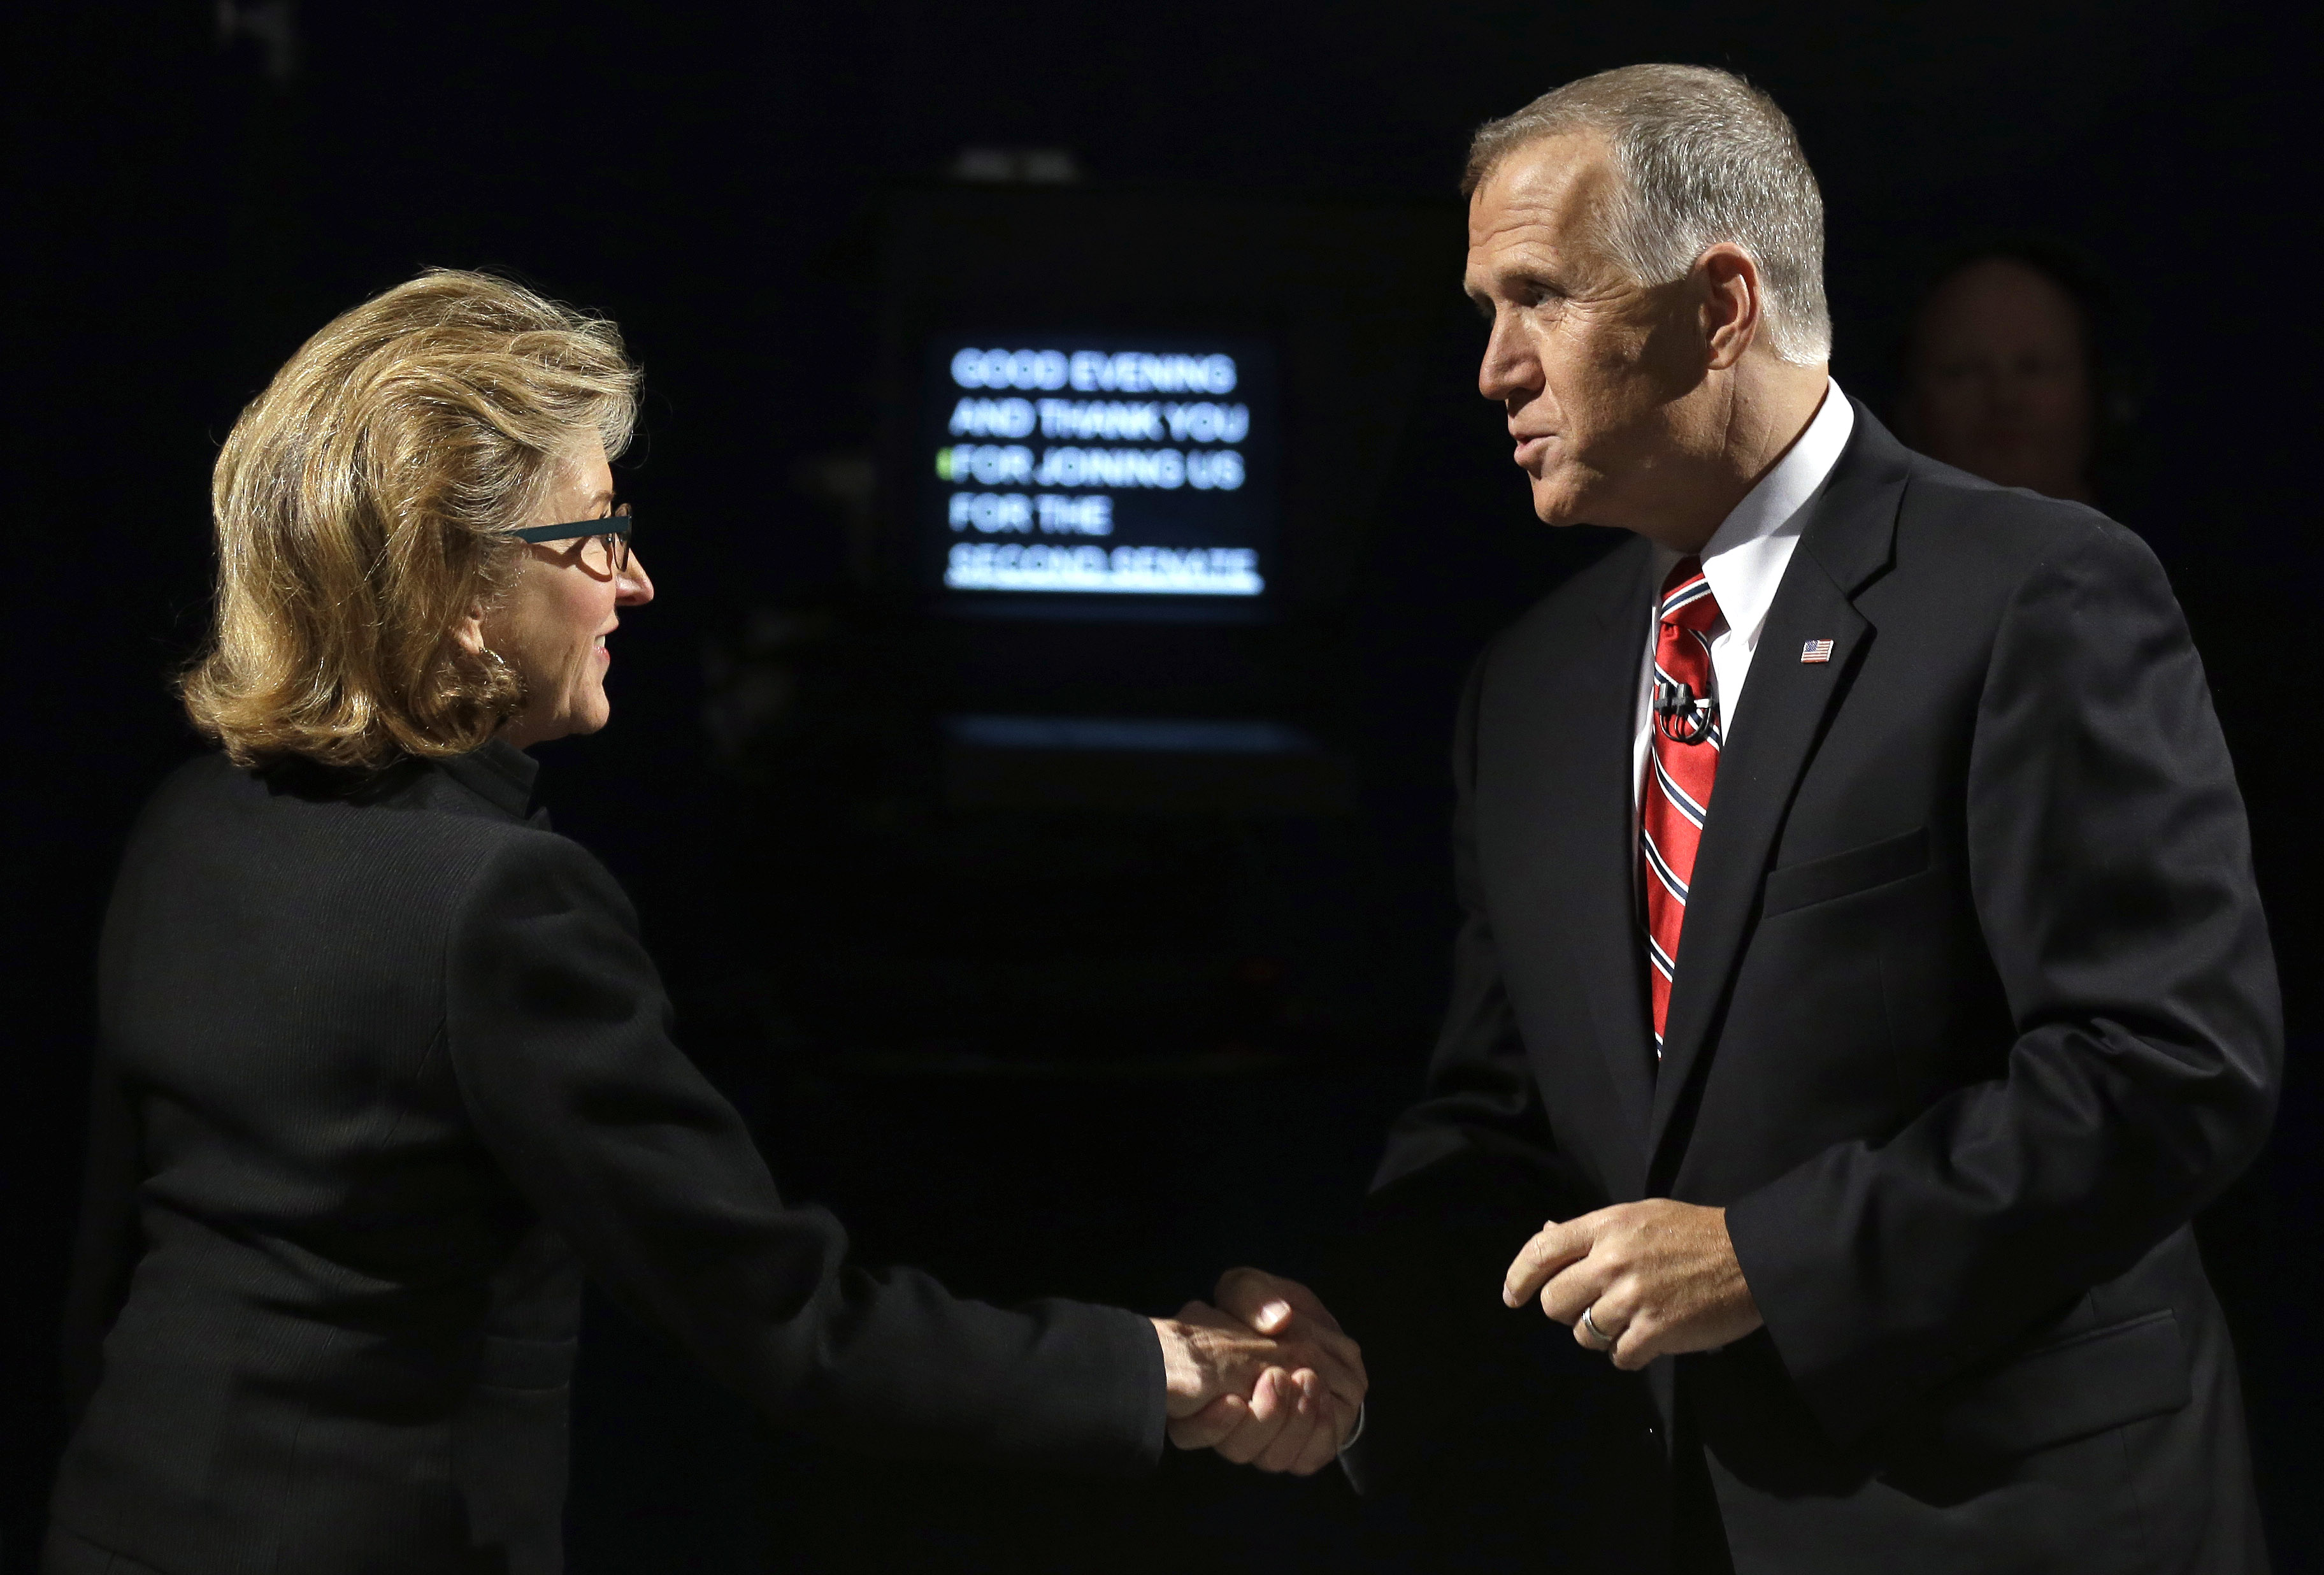 Sen. Kay Hagan, left, D-N.C., and North Carolina Republican Senate candidate Thom Tillis greet prior to a live televised debate at UNC-TV studios in Research Triangle Park, N.C.